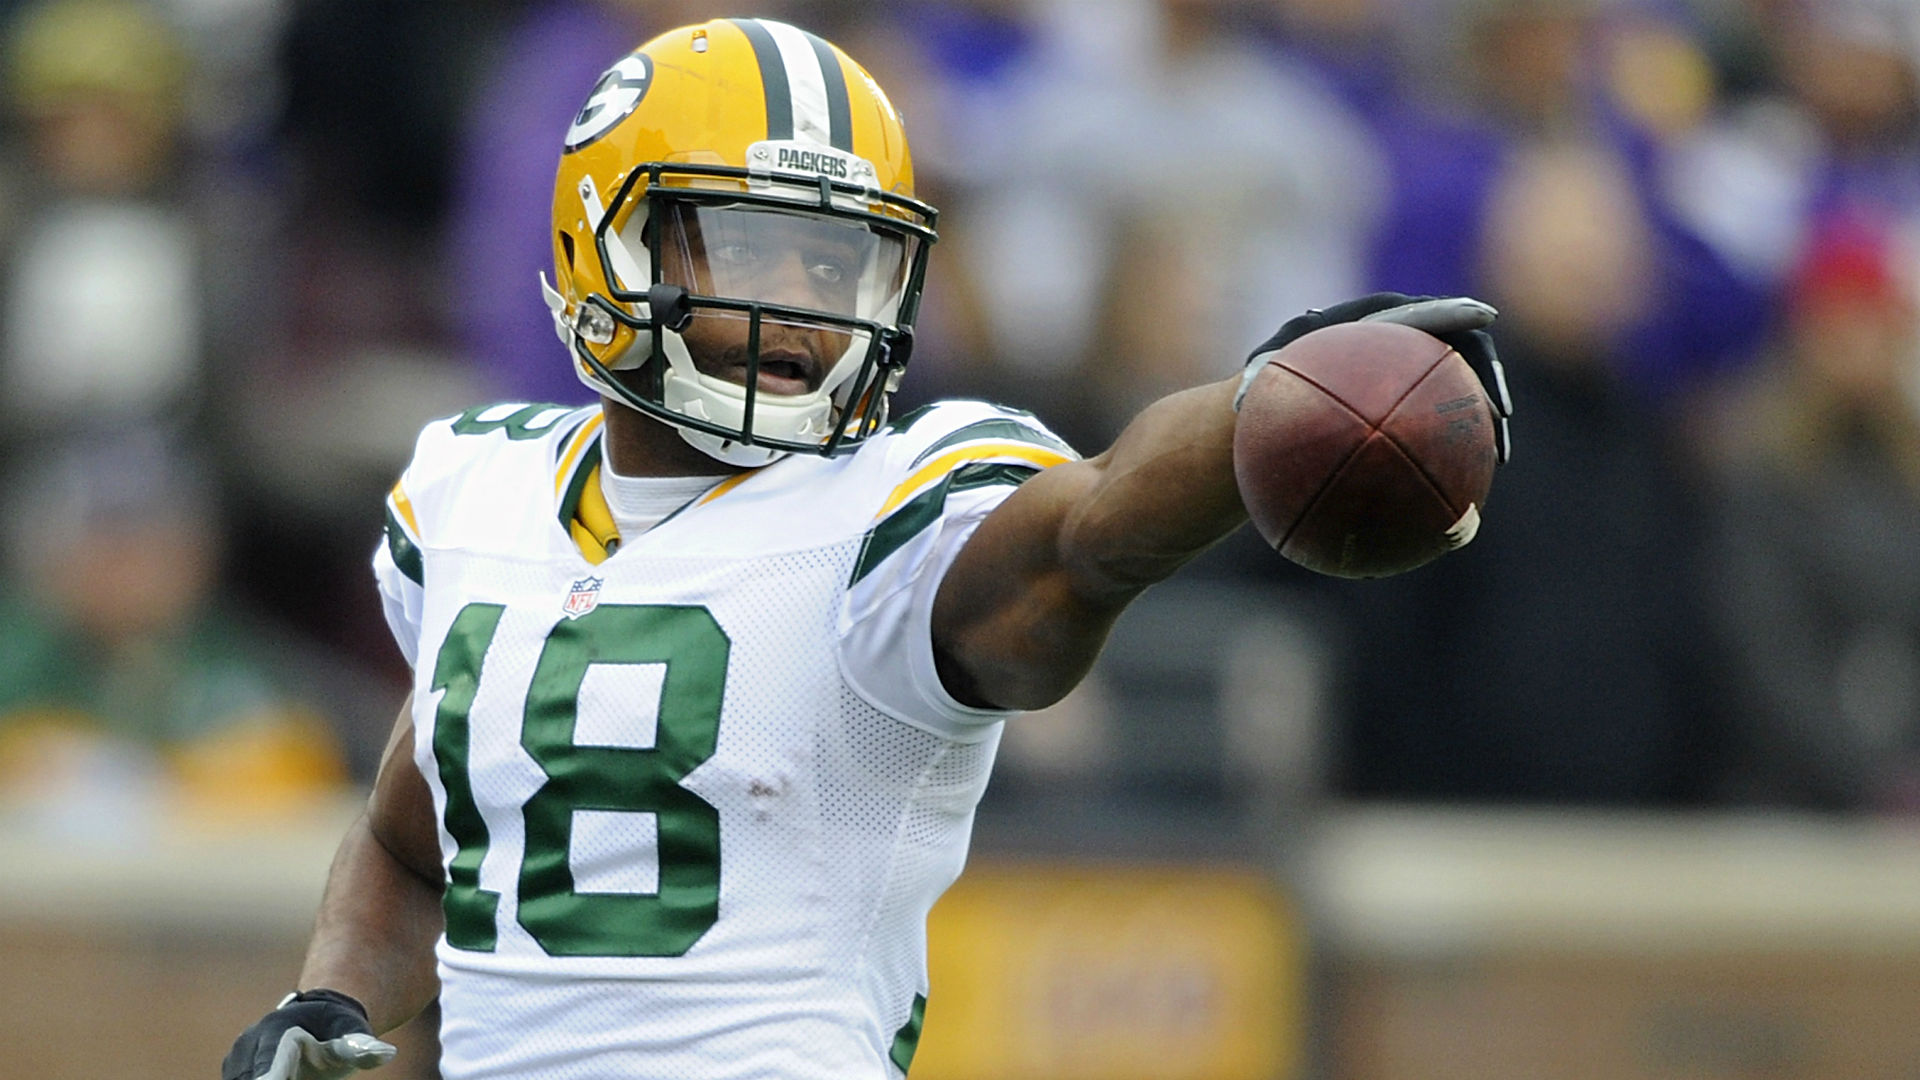 Cowboys free agency rumors: Dallas meeting with wide receiver Randall Cobb, safety Eric Berry